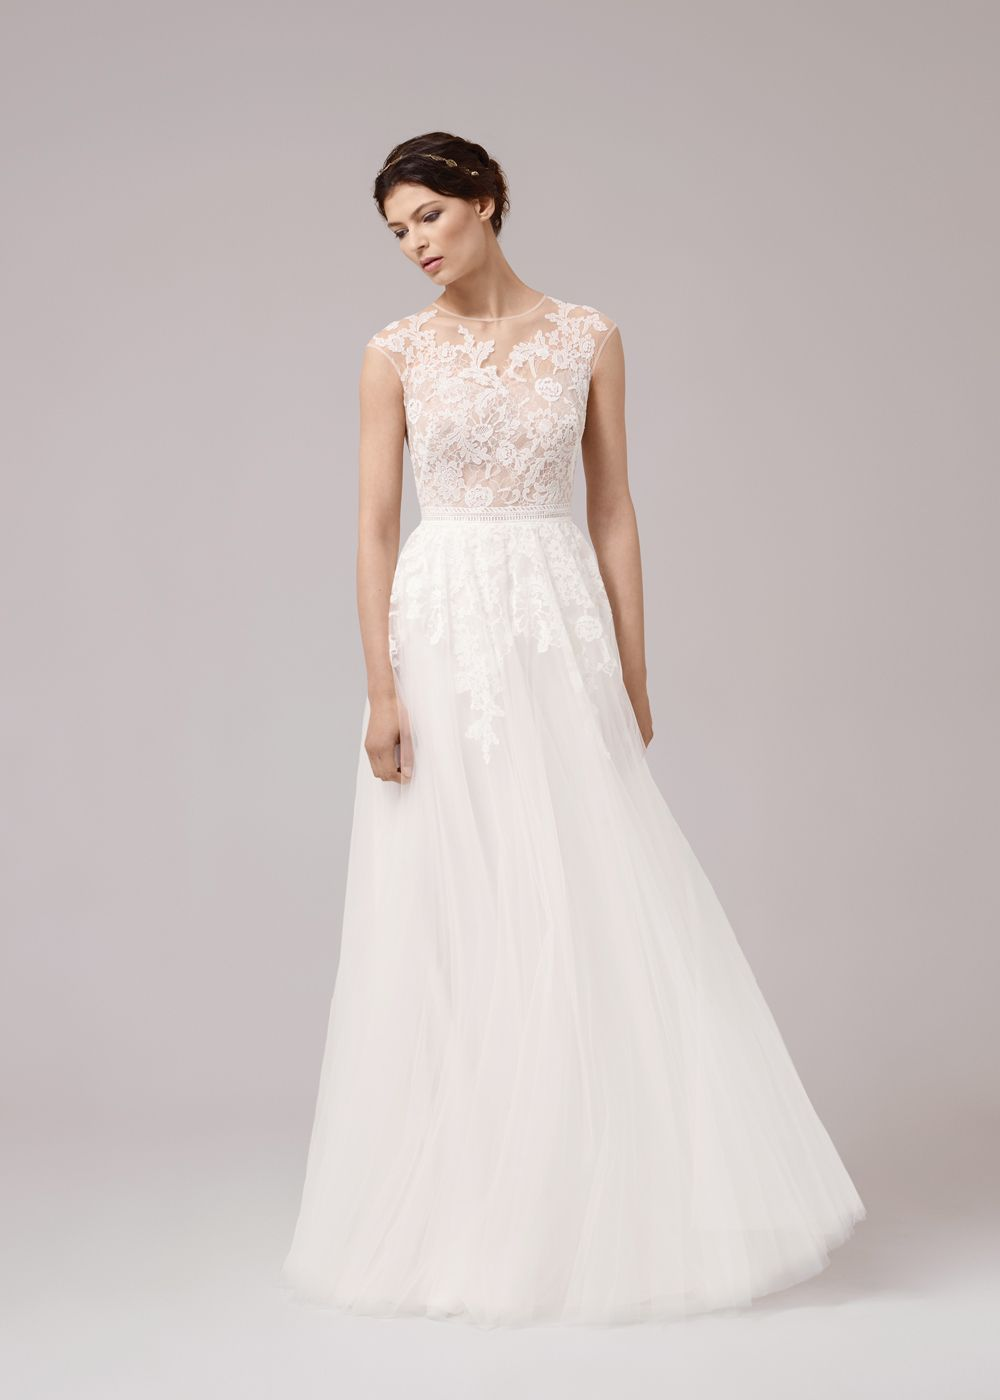 A beautiful aline wedding dress with french and italian lace